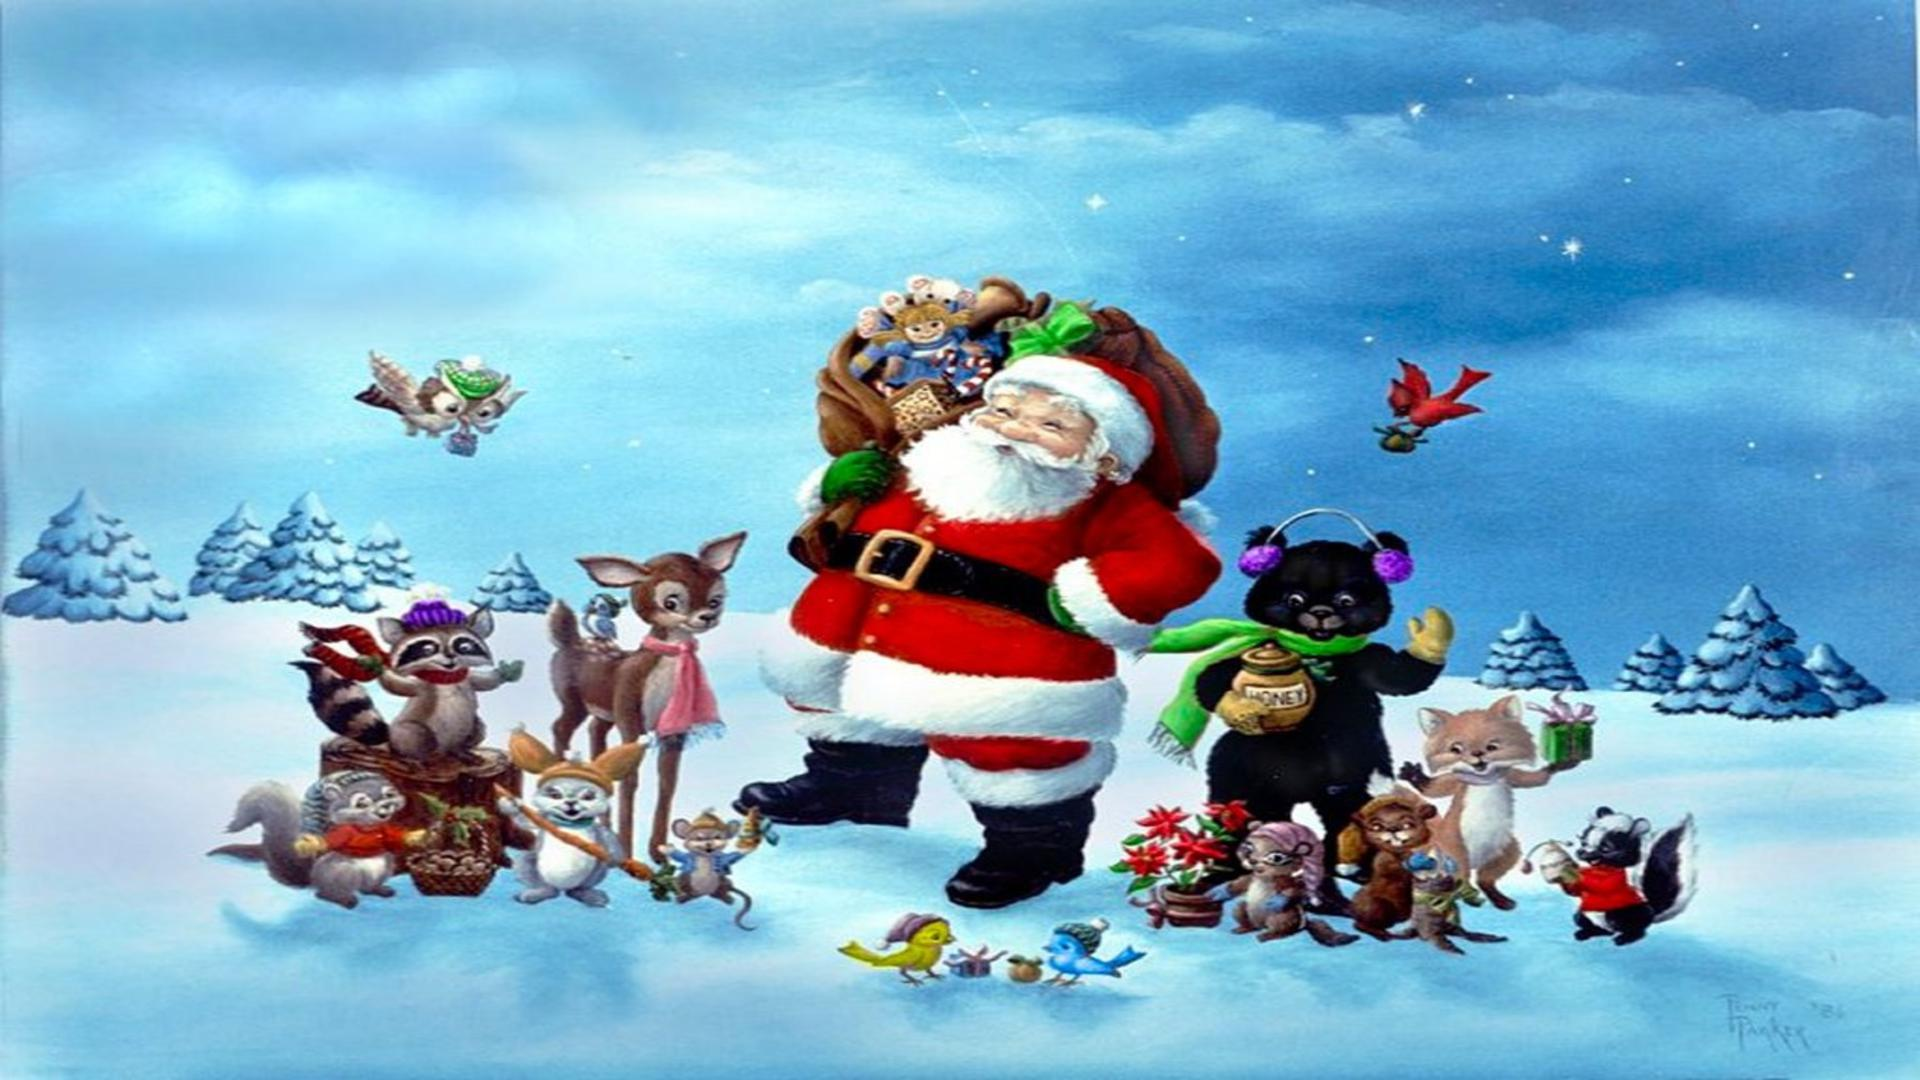 merry christmas 2012 hd wallpapers | i have a pc